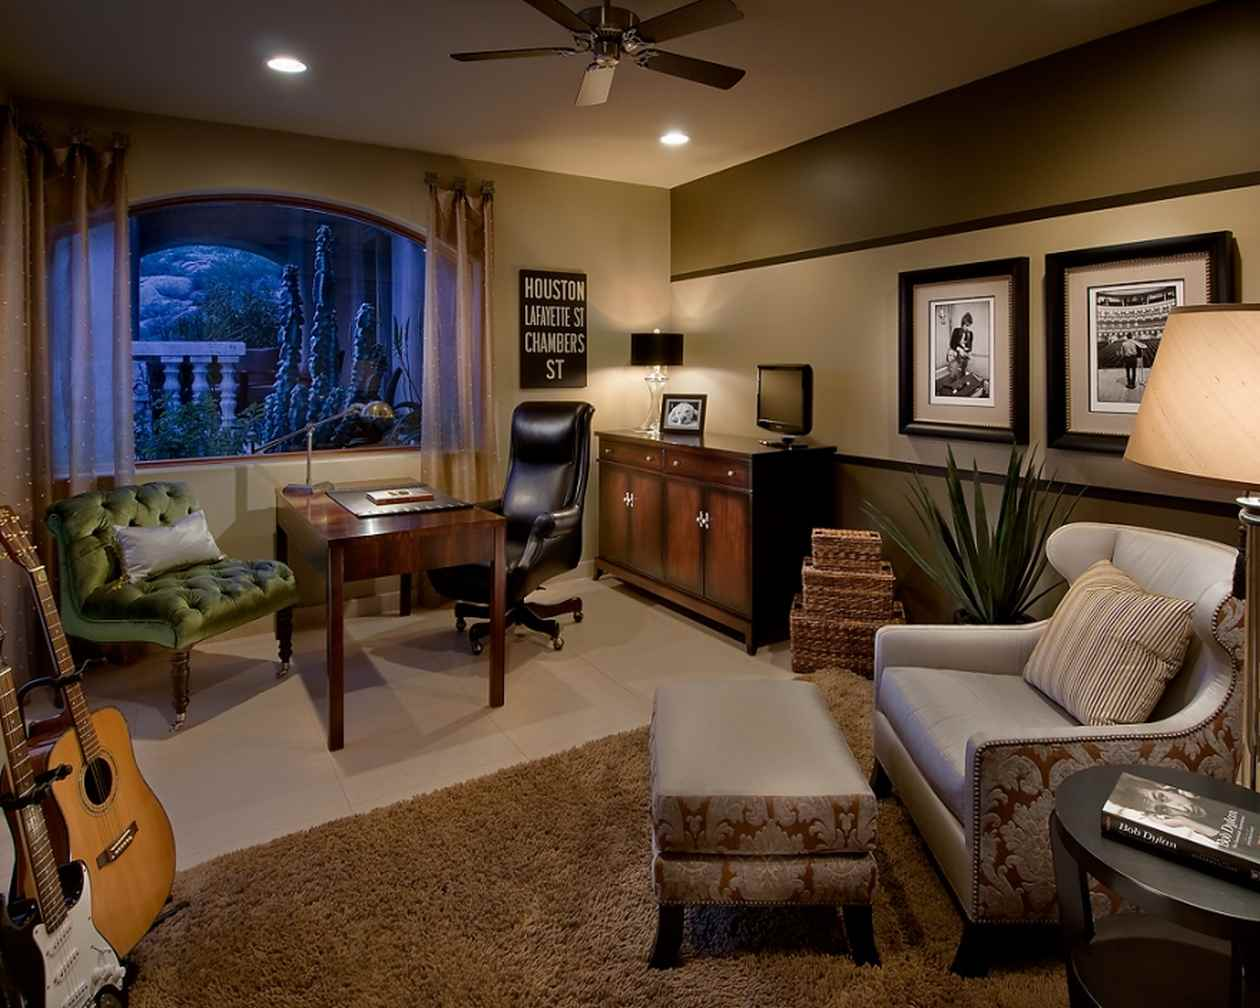 Elegant-traditional-home-office-design-ideas-with-comfortable-sofa-and-green-chairs